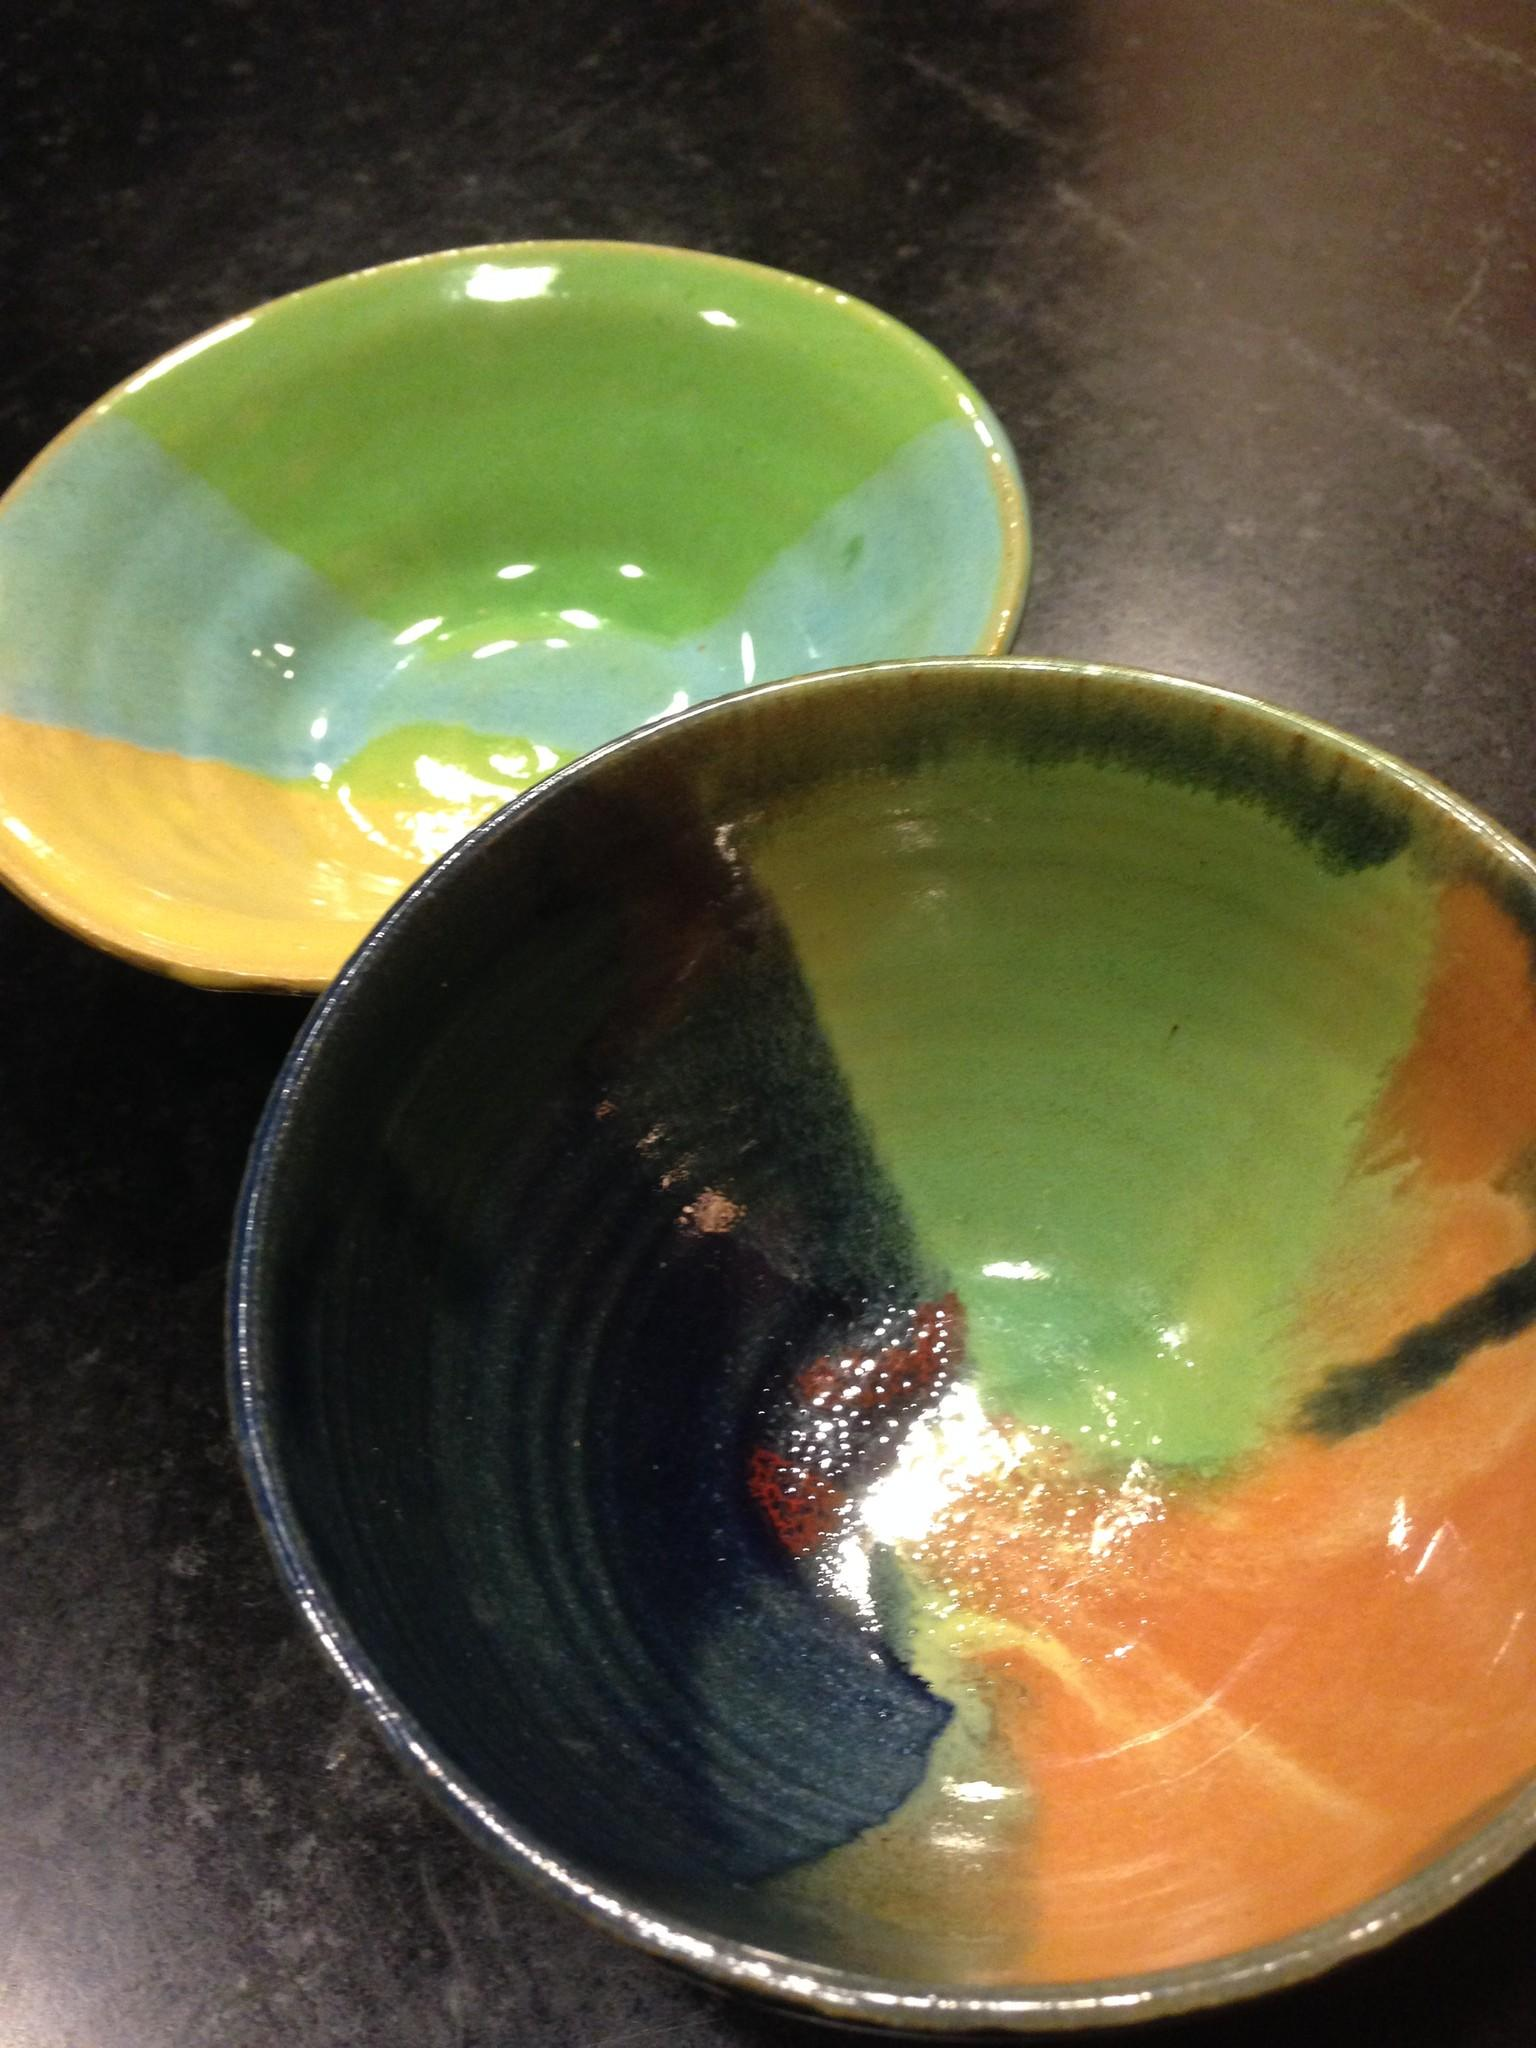 Ceramic bowls made by Hall High School students will be for sale at the Empty Bowls banquet on March 26.